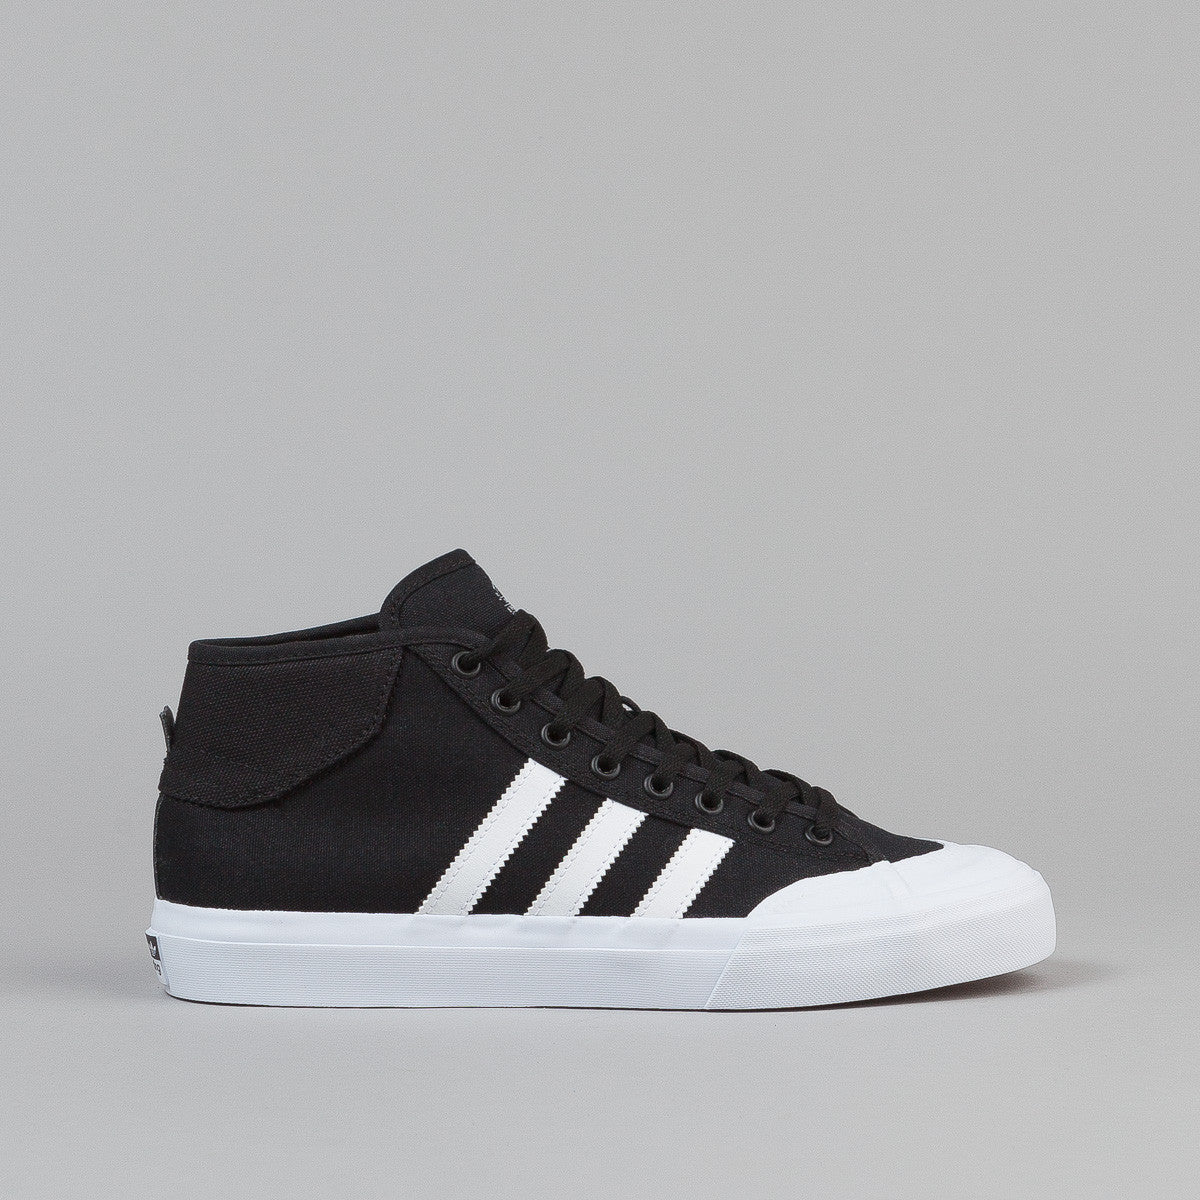 Adidas Matchcourt Mid Shoes